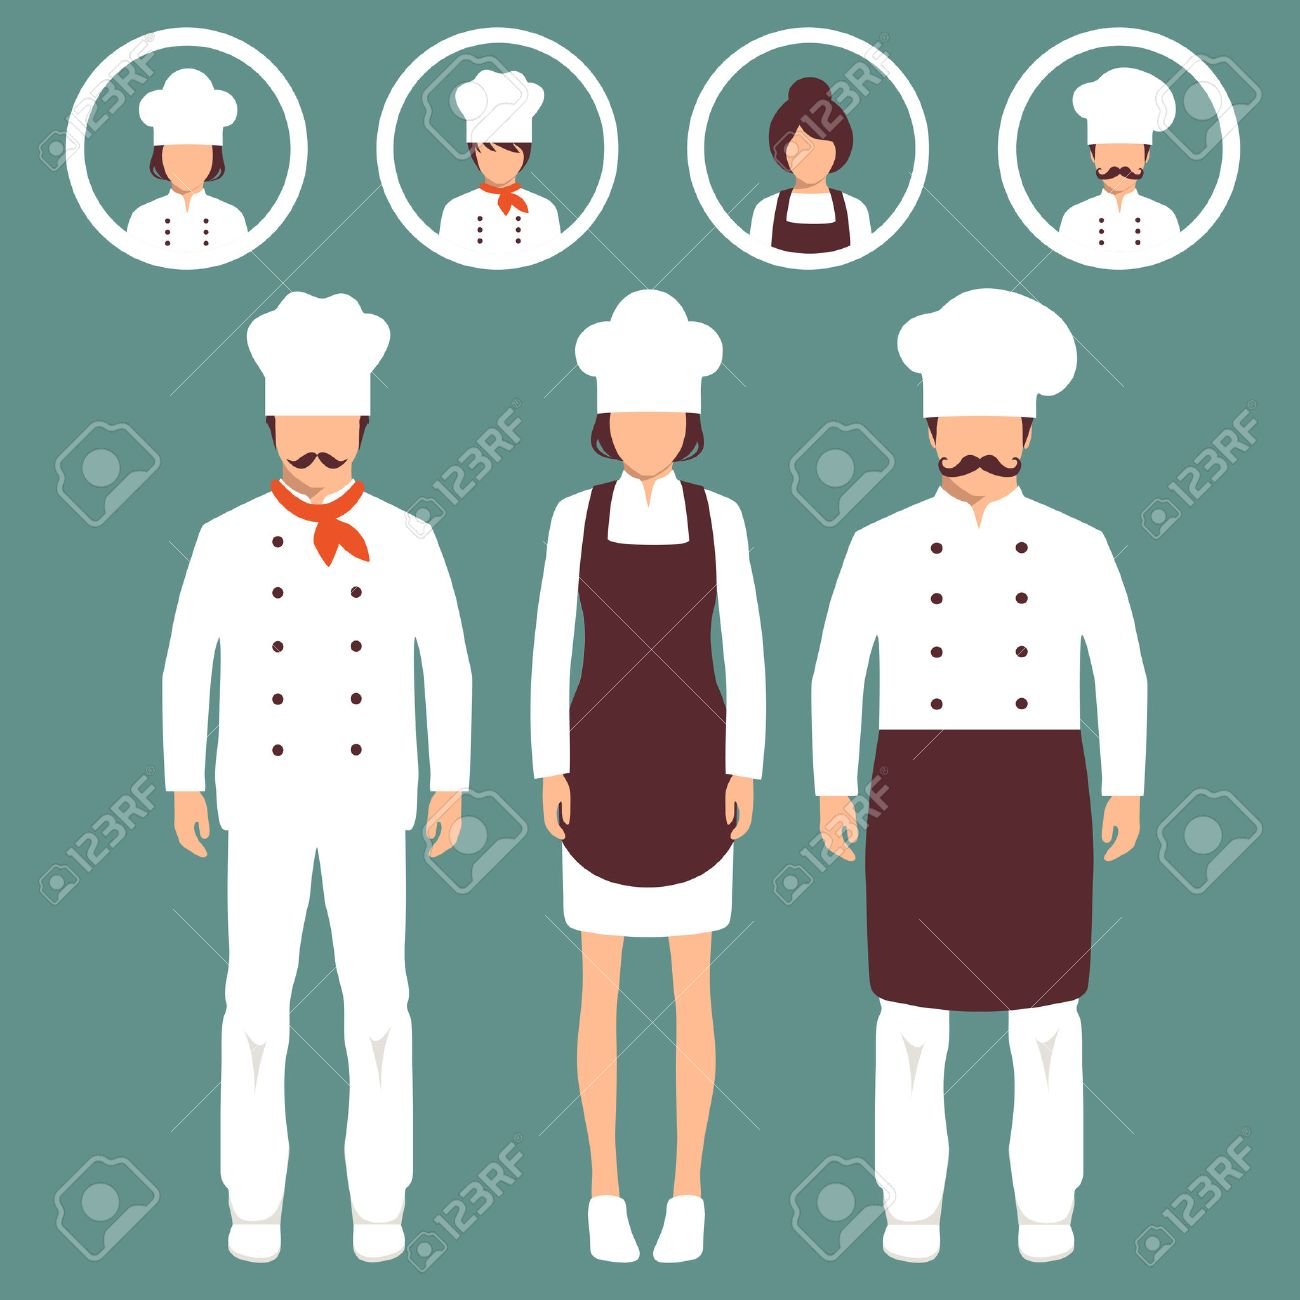 Cooker Stock Photos. Royalty Free Cooker Images